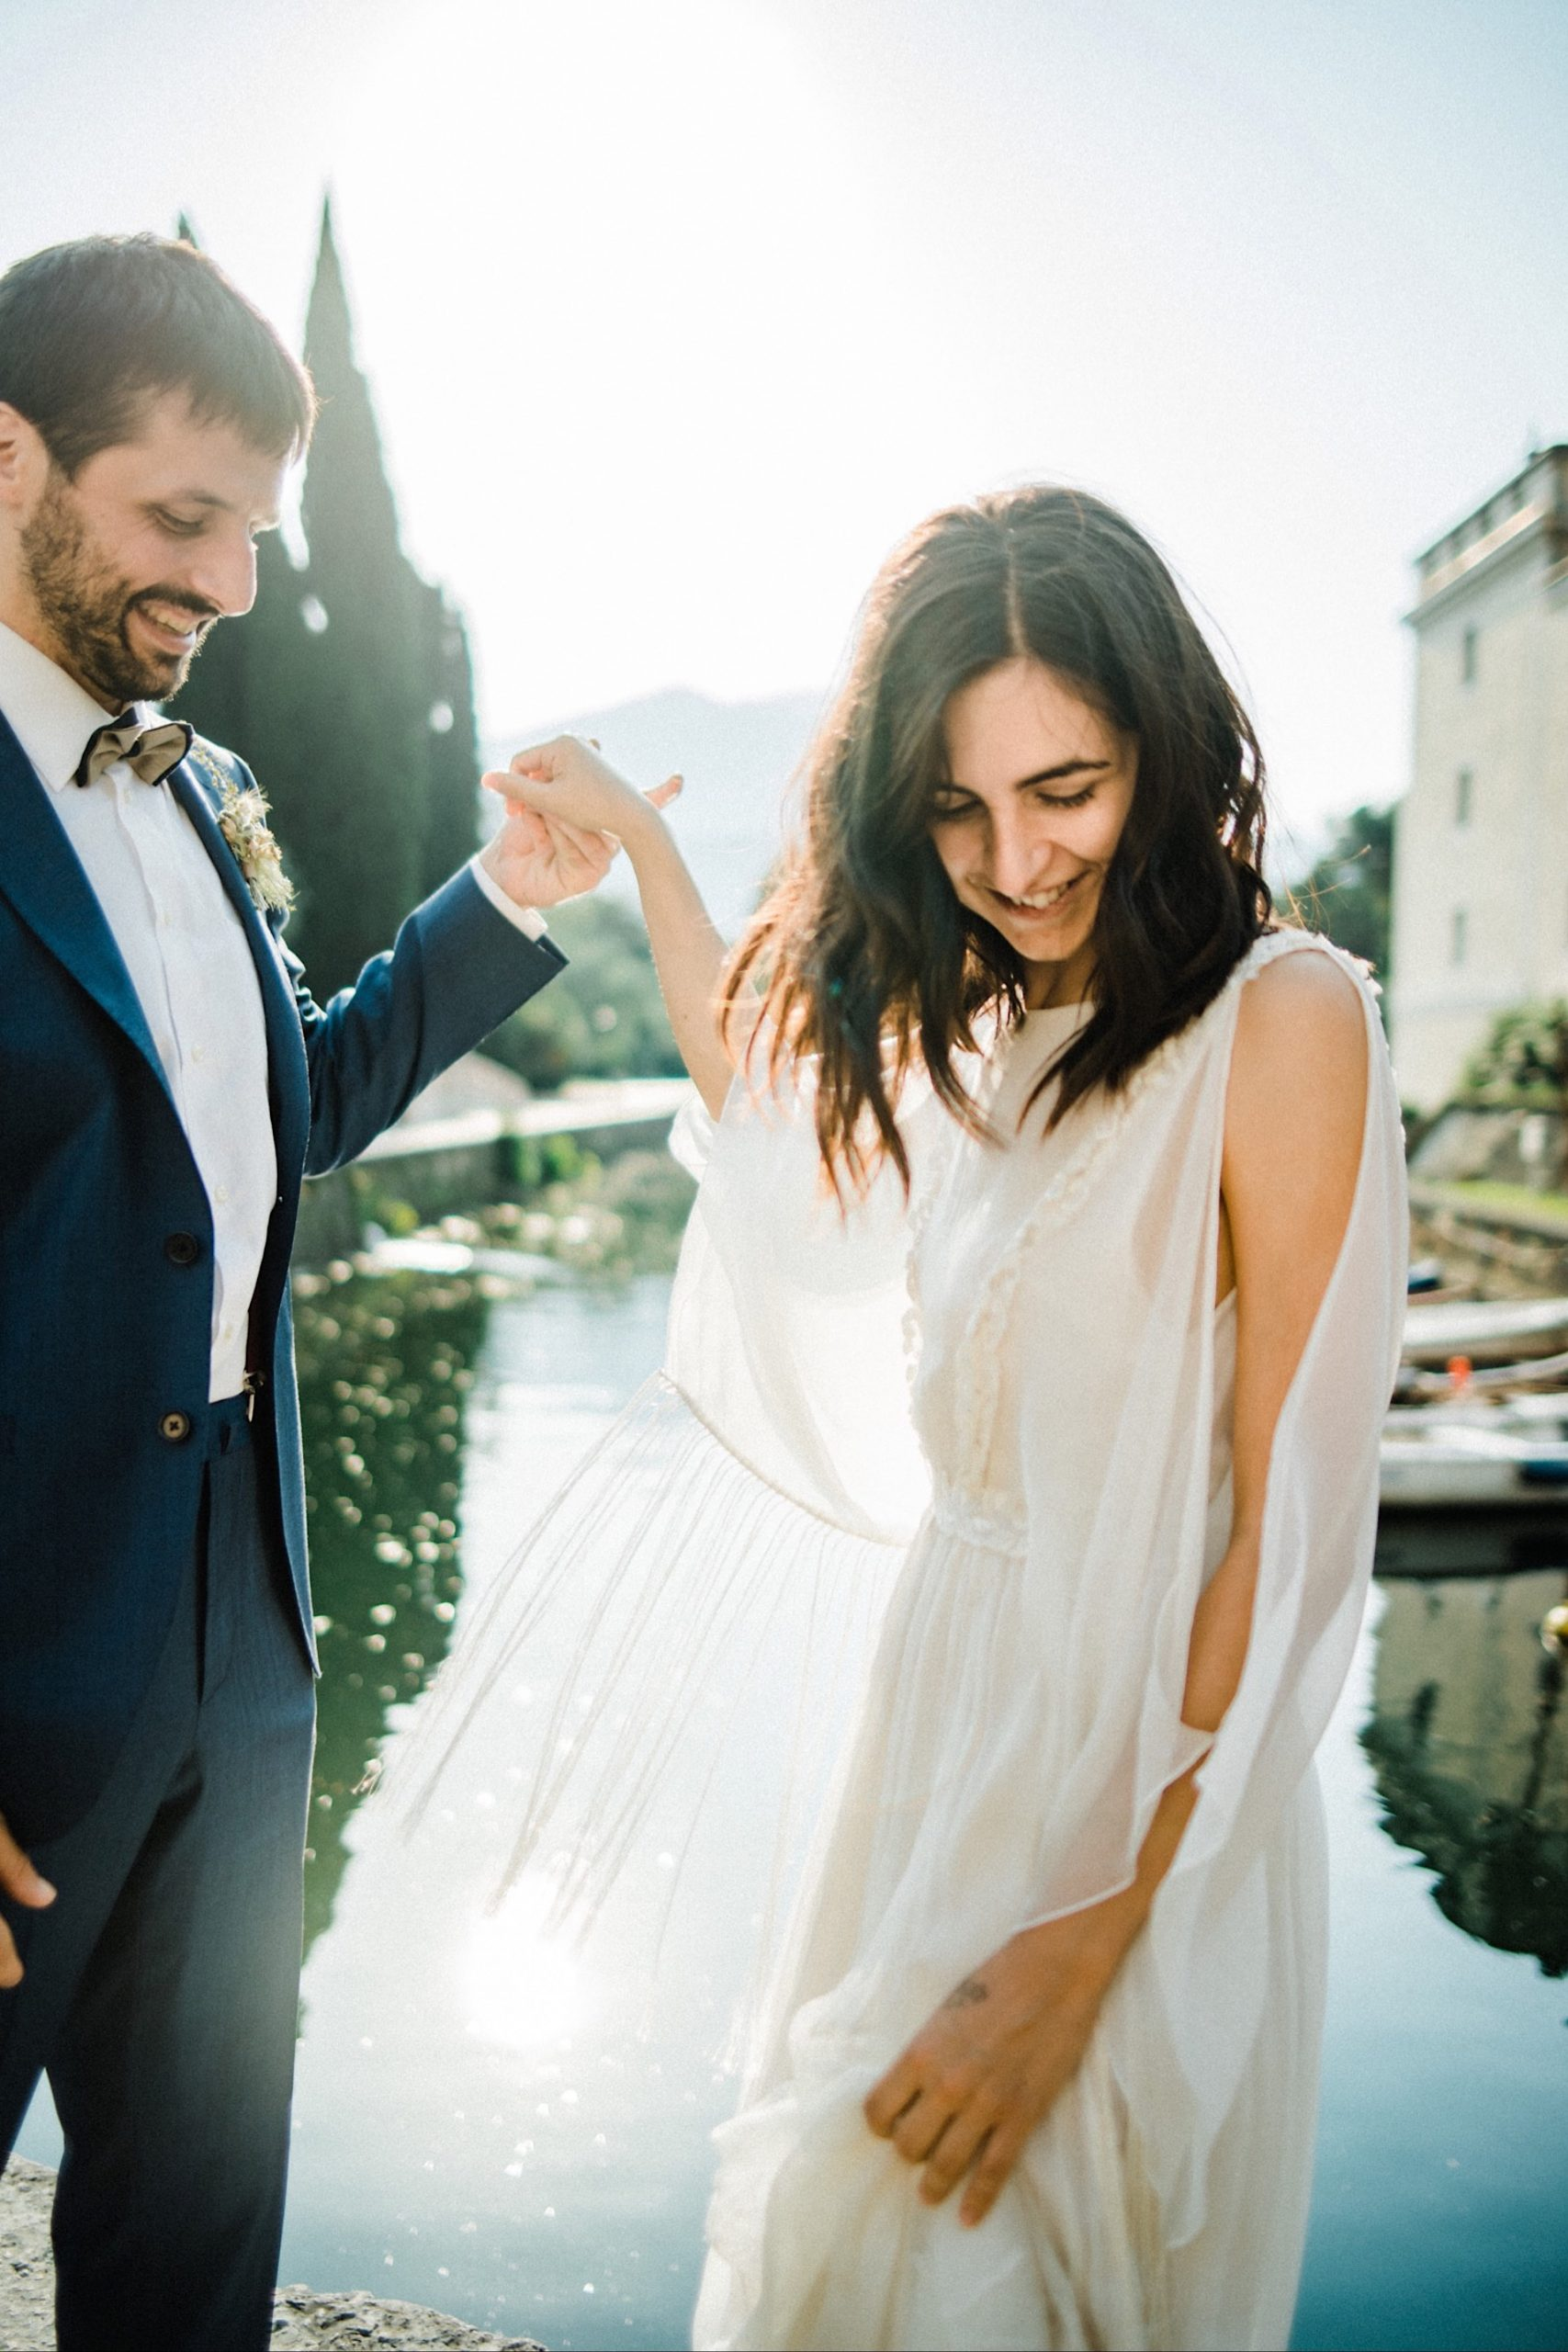 A medium shot of a bride looking down smiling, while her groom smiles at her, taken by an Italian Elopement Photographer for a Boho Summer Elopement in Italy.